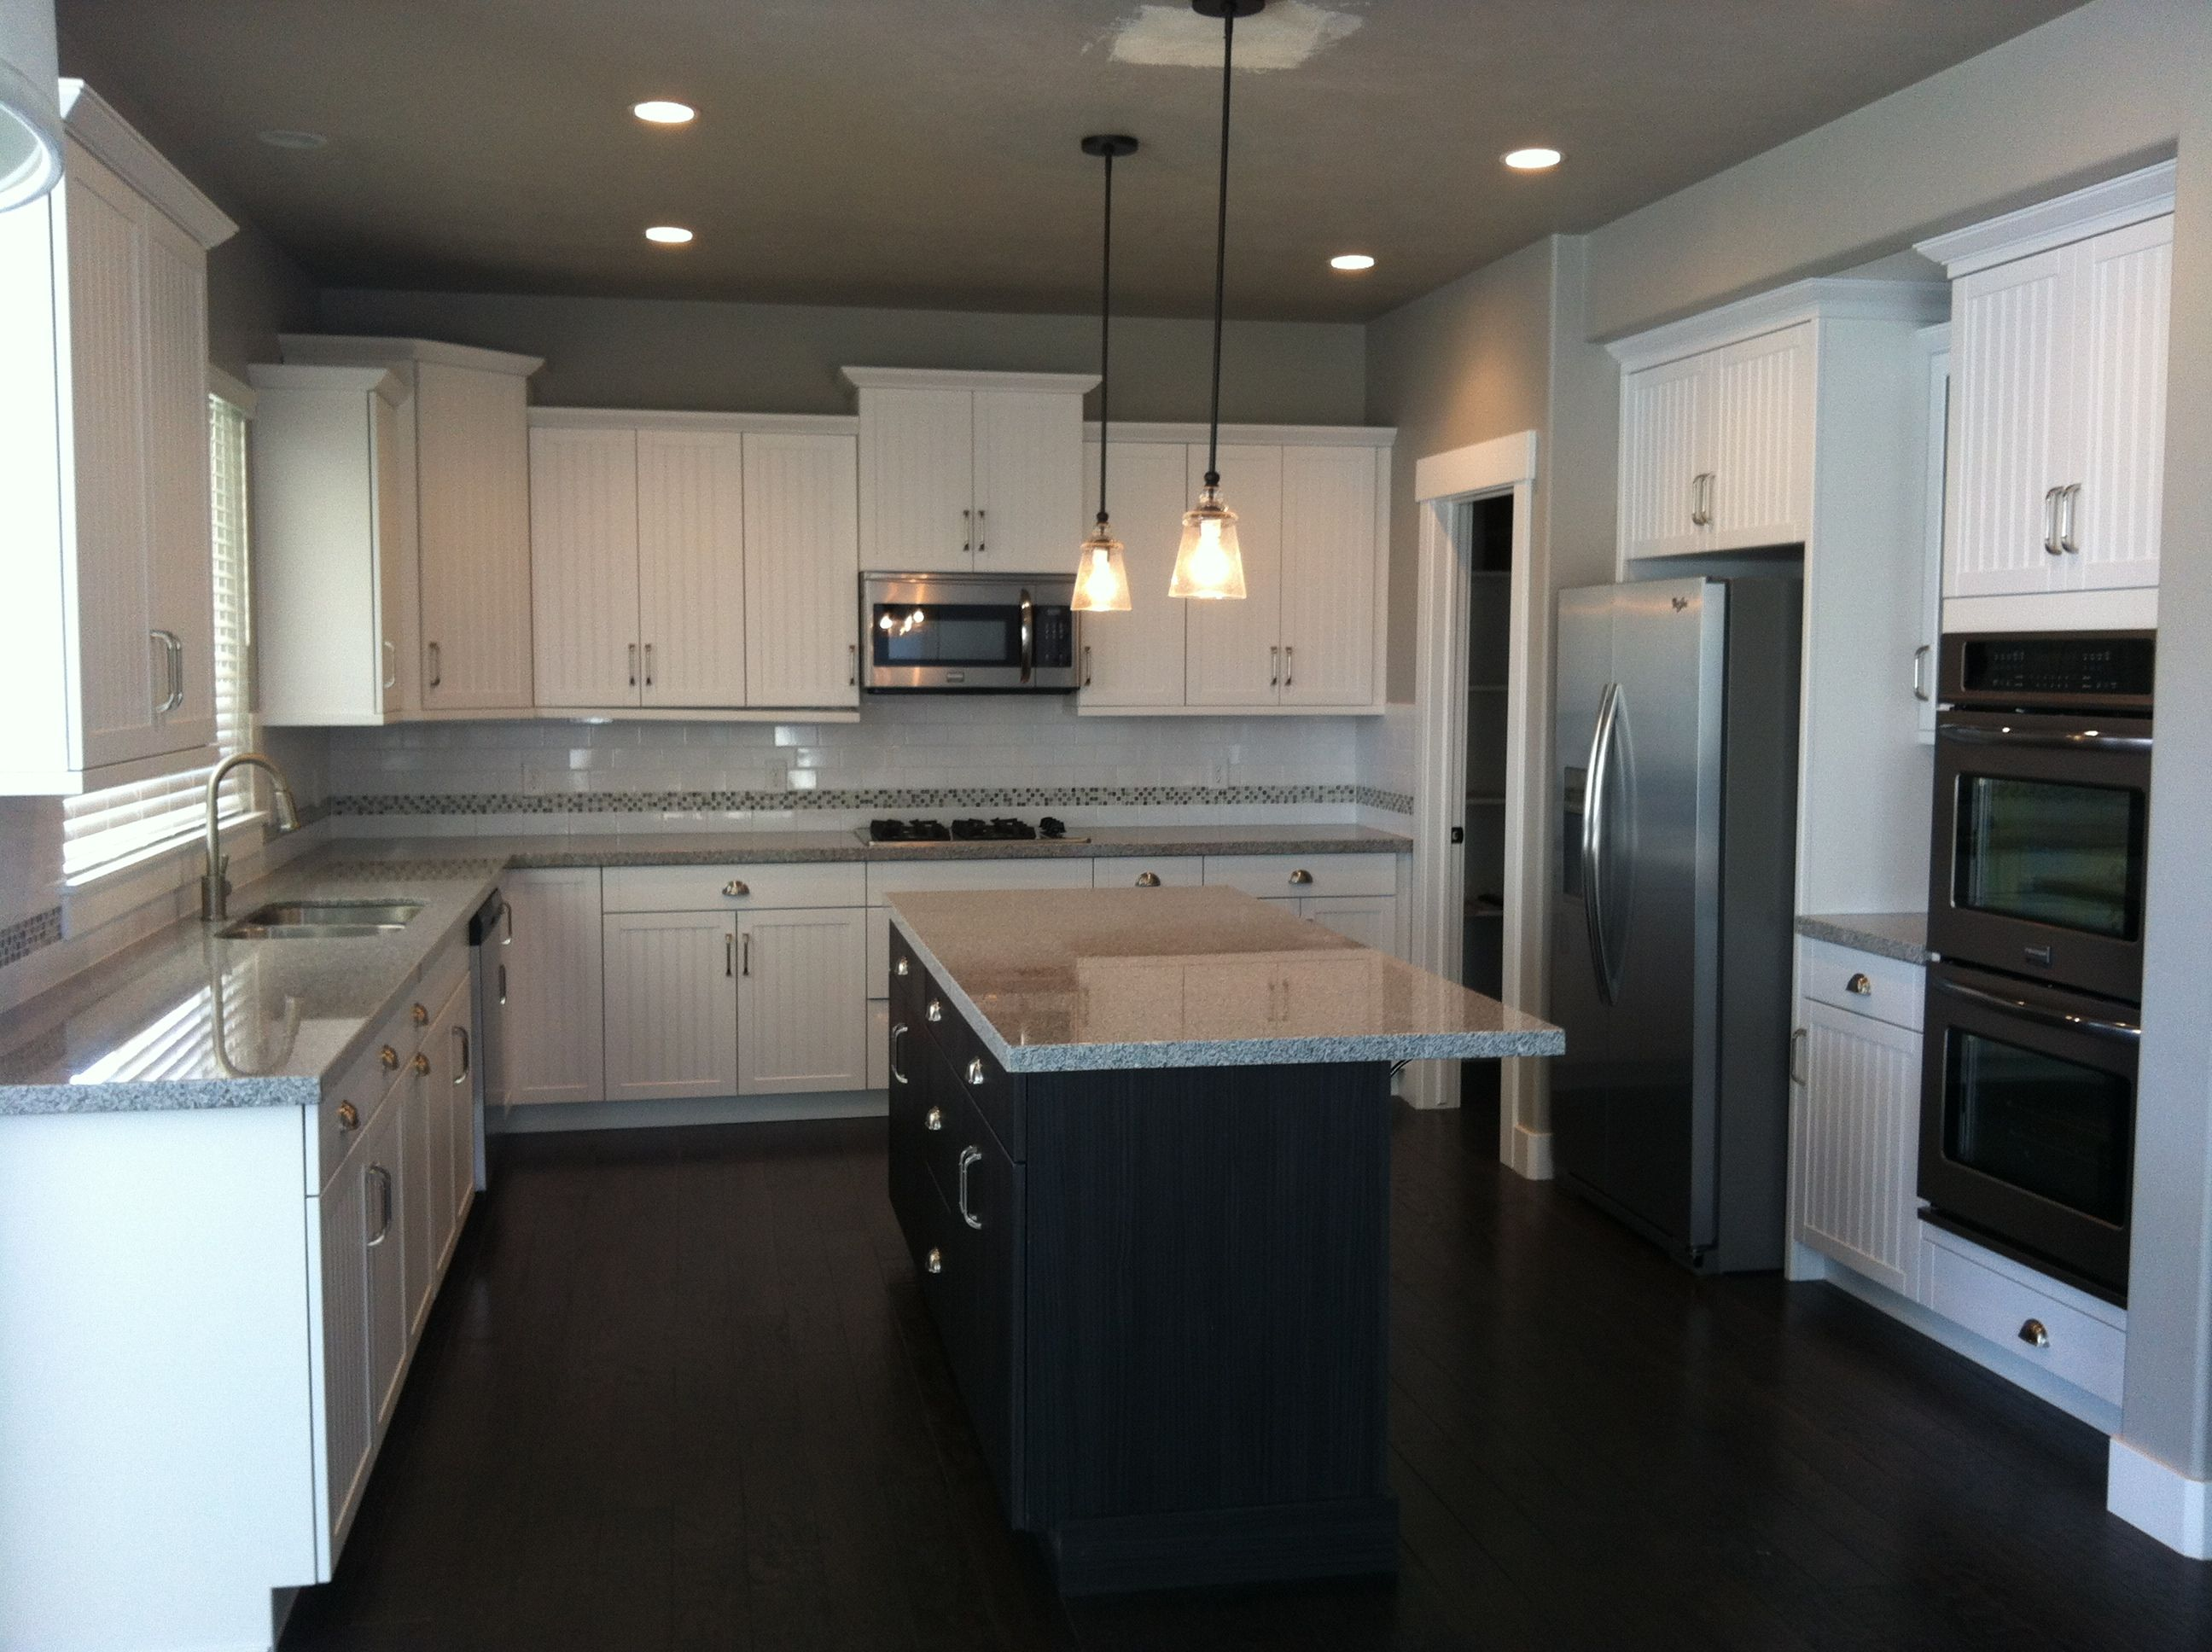 My beautiful kitchen white cottage cabinets with a dark island and